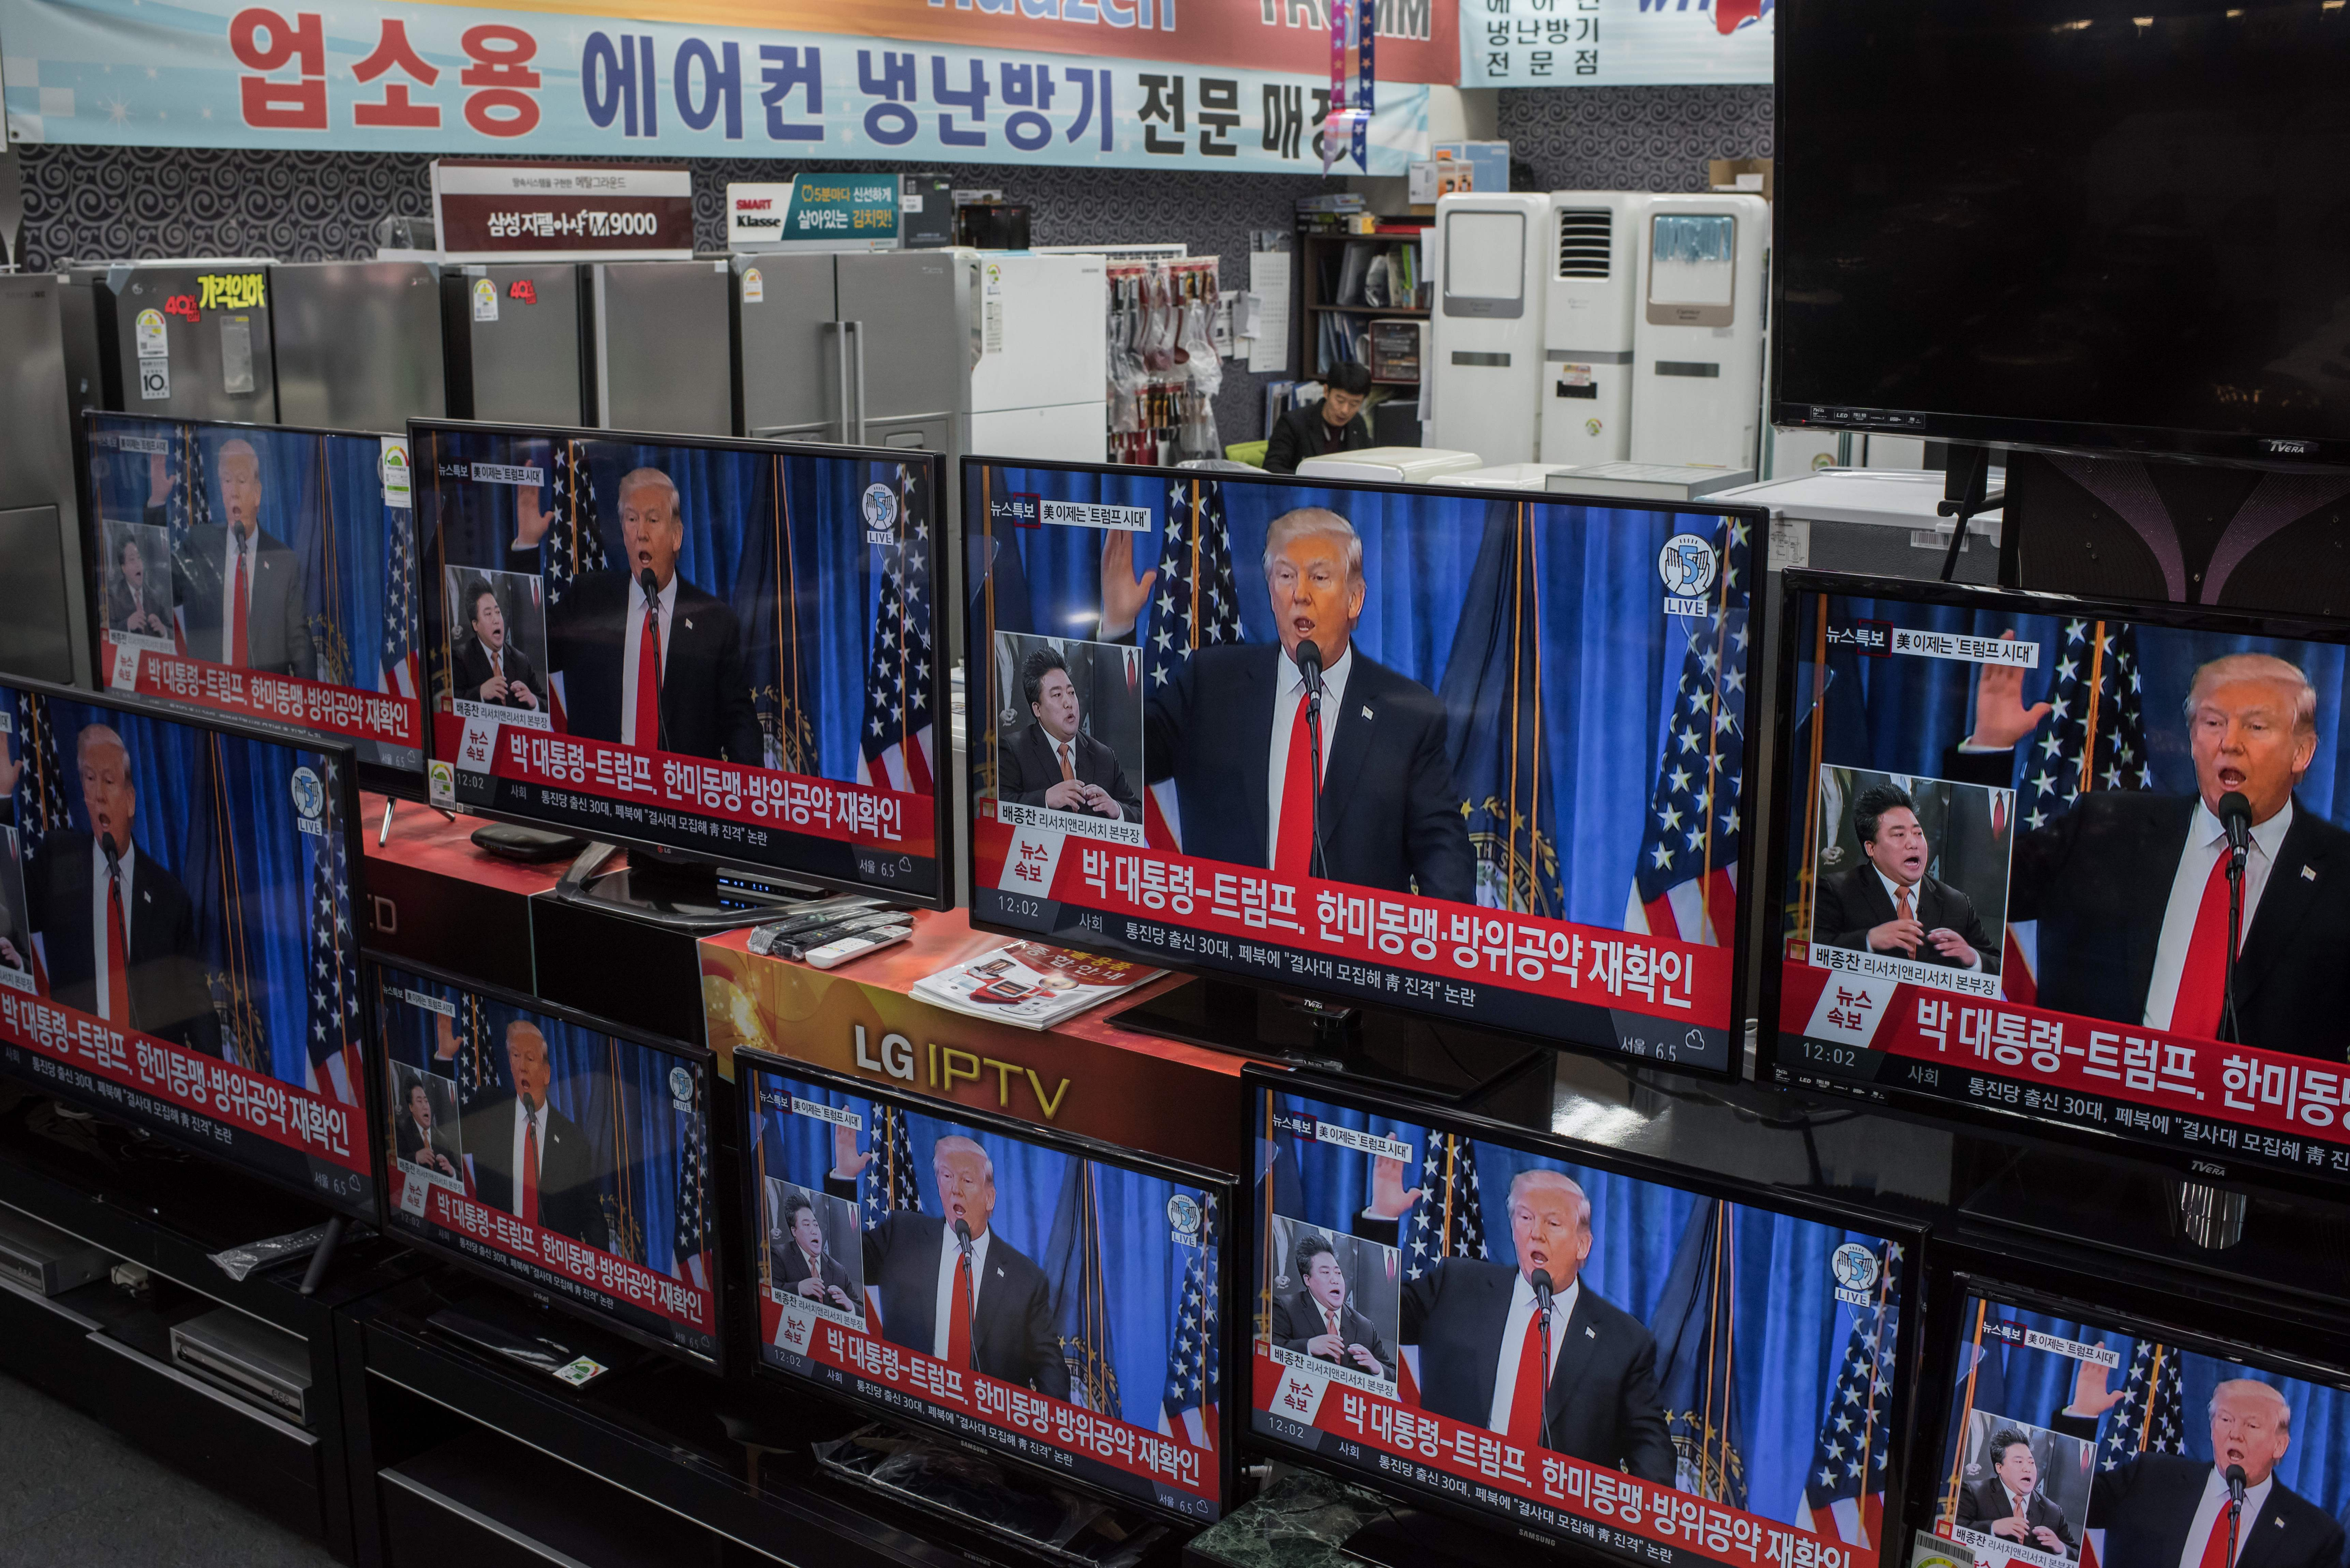 Trump just completely reversed his policy on South Korea — only 2 days after being elected